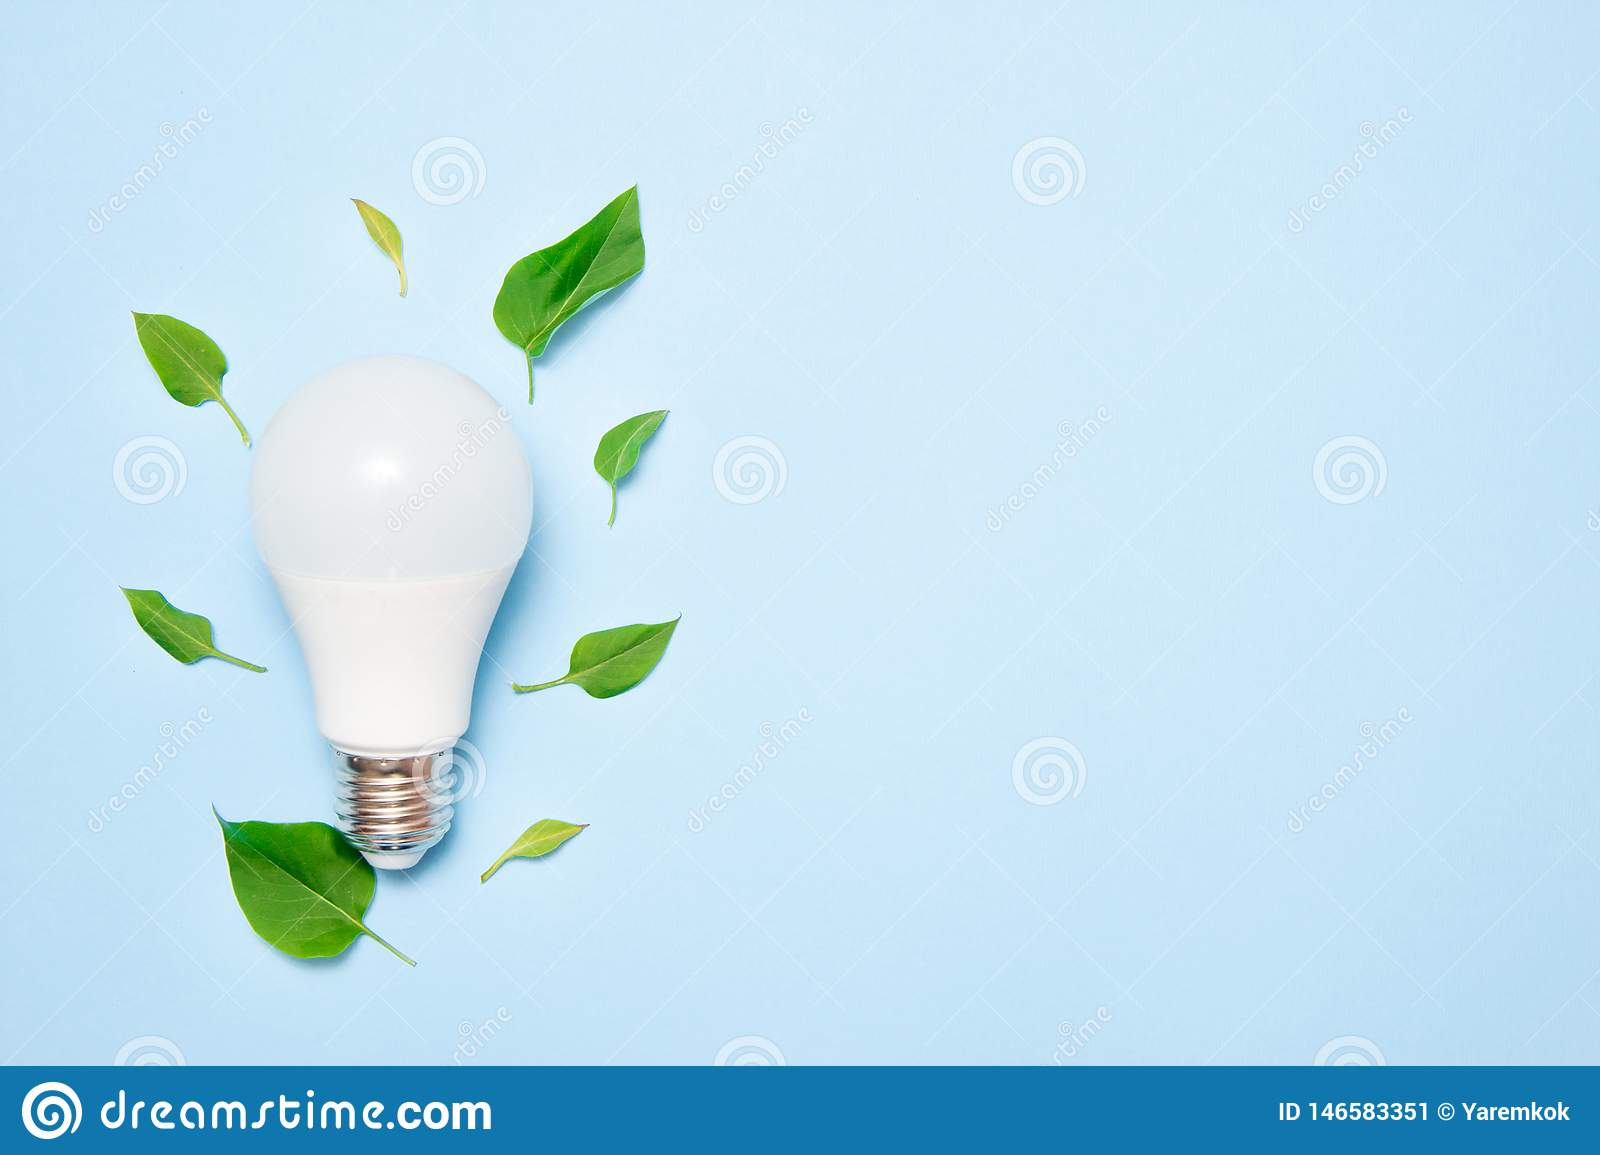 Led lamp with leaves on a blue background. Green energy efficiency concept. Top view